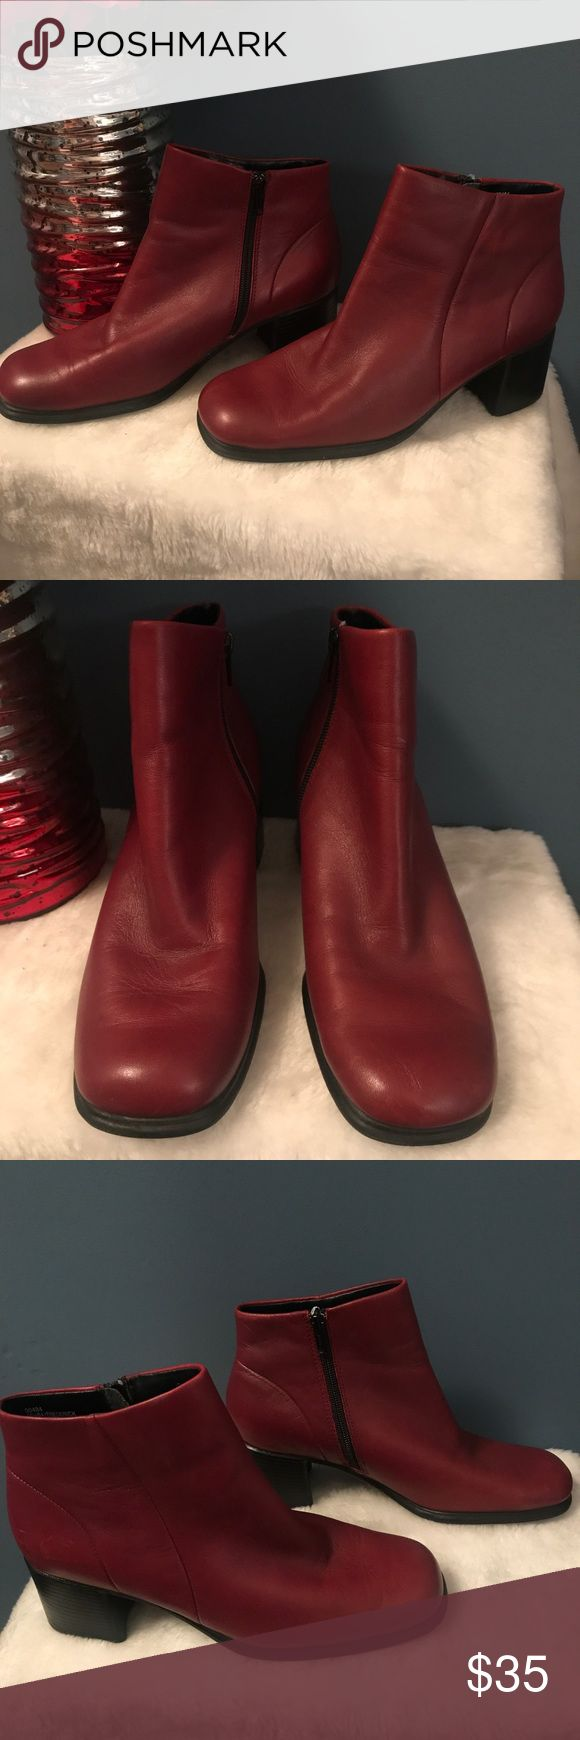 Andrea Viccaro Red Leather boots ❤️ Super classy leather boots. In good condition, minimal wear. A few minor areas that are faded as seen in last pic nothing major. Inside labels peeling. ❤️Take a look at our entire store  ❤️ We ship within 24 hours ❤️100% customer satisfaction rating ❤️Customer service always here to help ❤️Send us offers, we love Bundles also.                                      ❤️We are an Online Clothing Company  Thanks for shopping at DuttyKangaroo. You are…